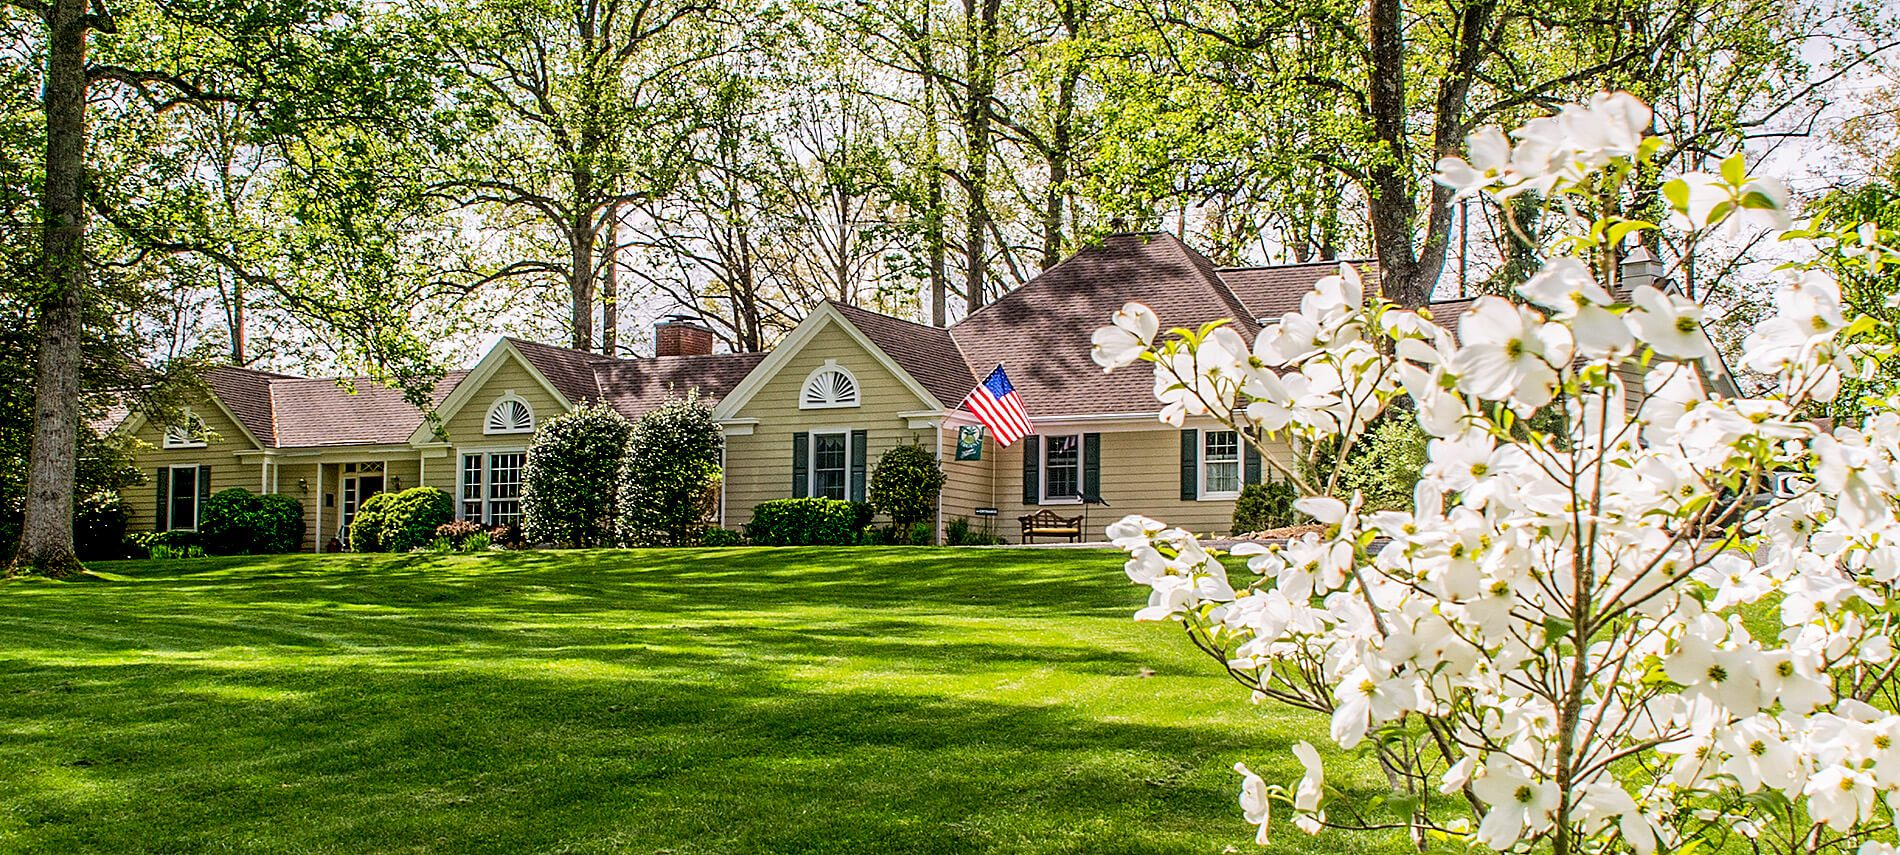 A white flowering dogwood bush in focal contract with the properties house and front lawn in the green splendor of summer being presided over by an American Flag hanging from the porch.